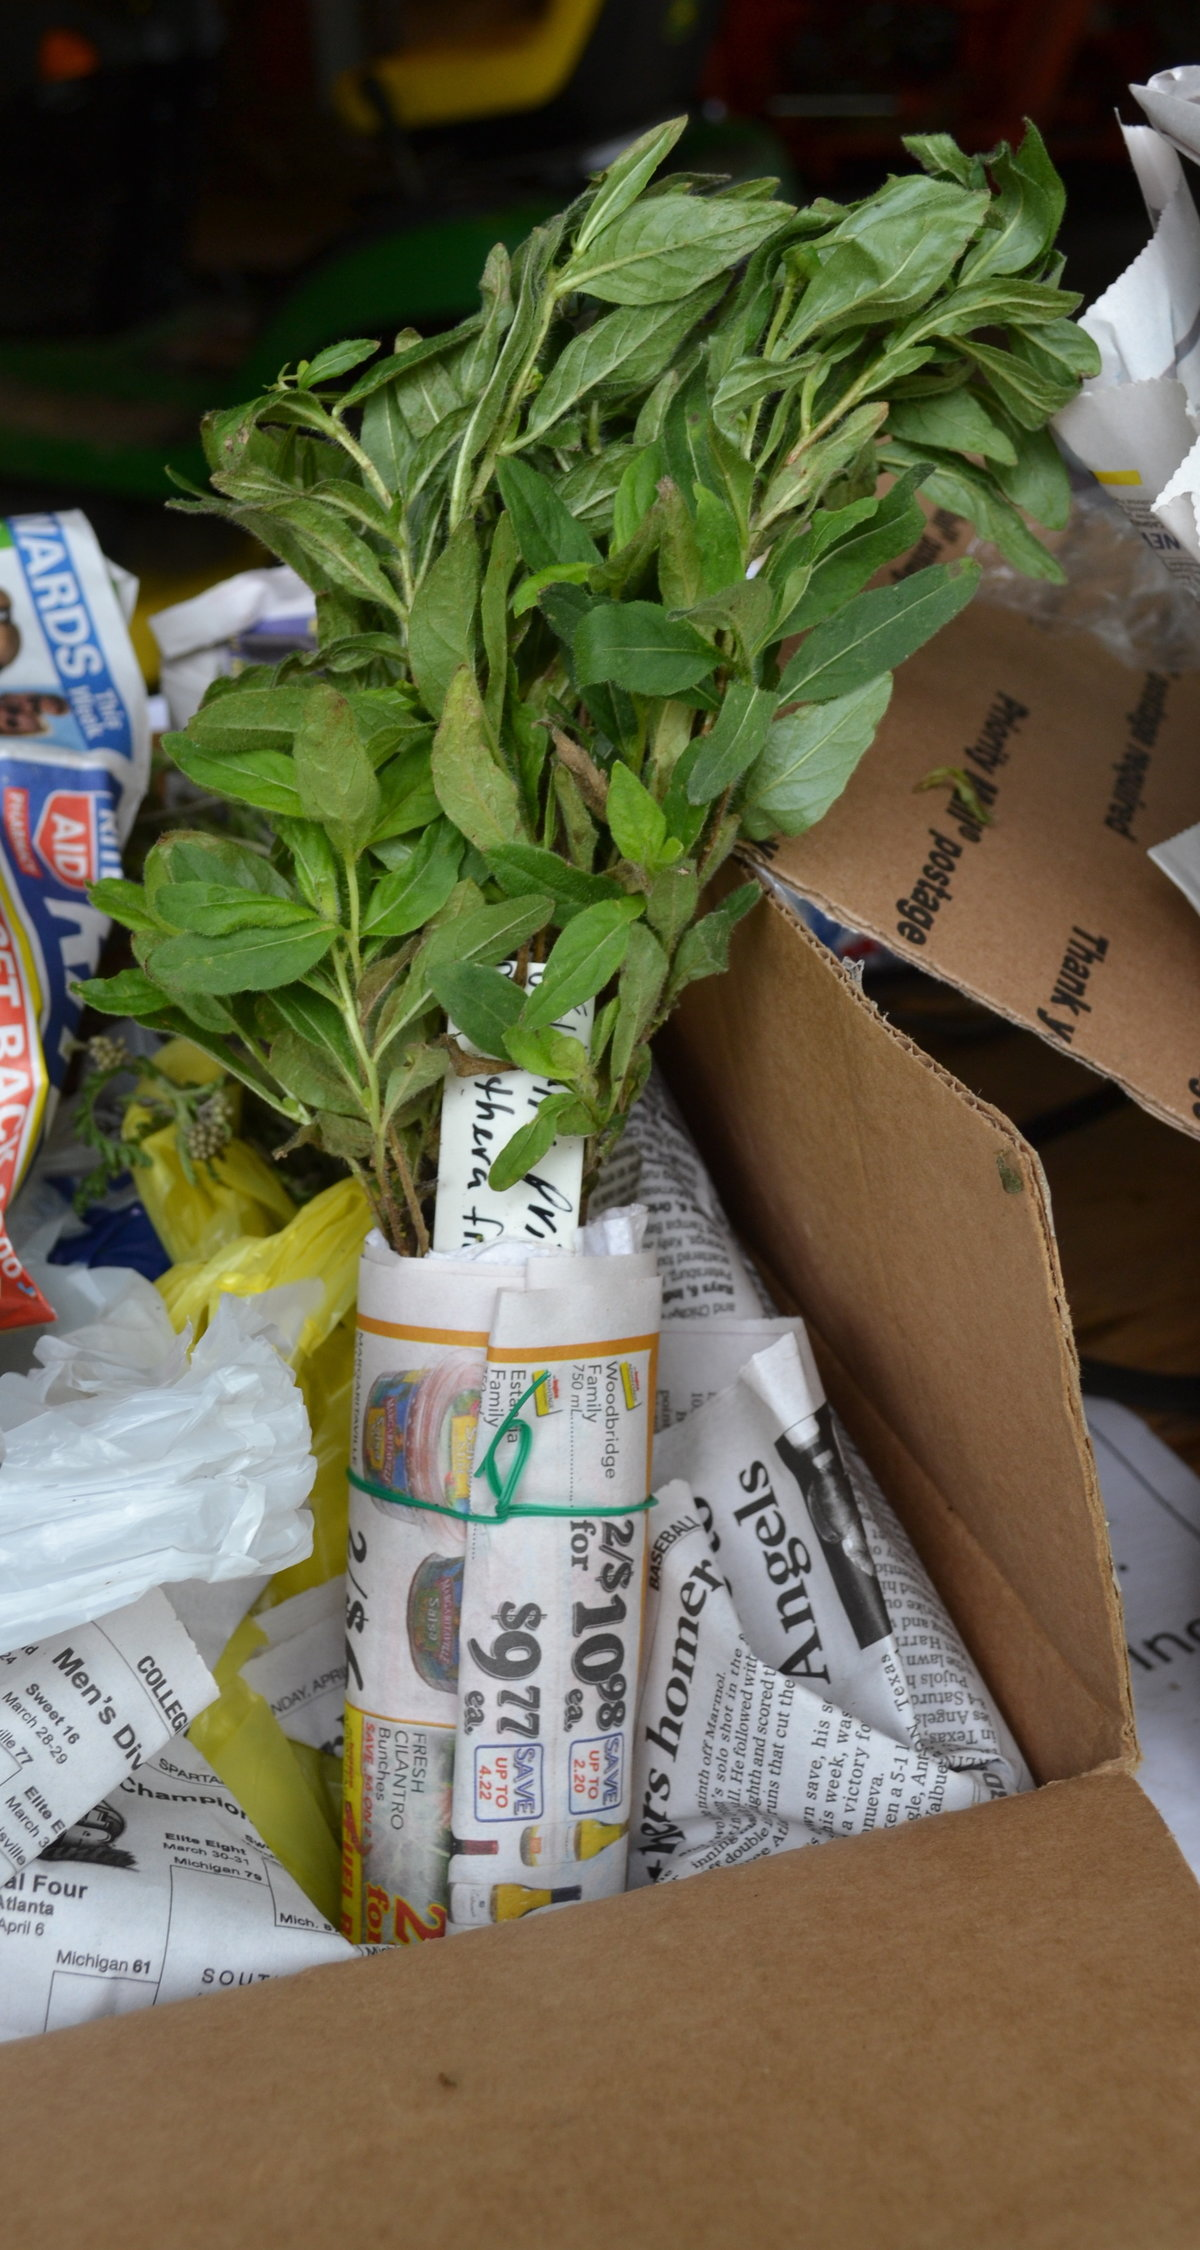 The nursery tag safely and prominently displayed on a bundle of plants.